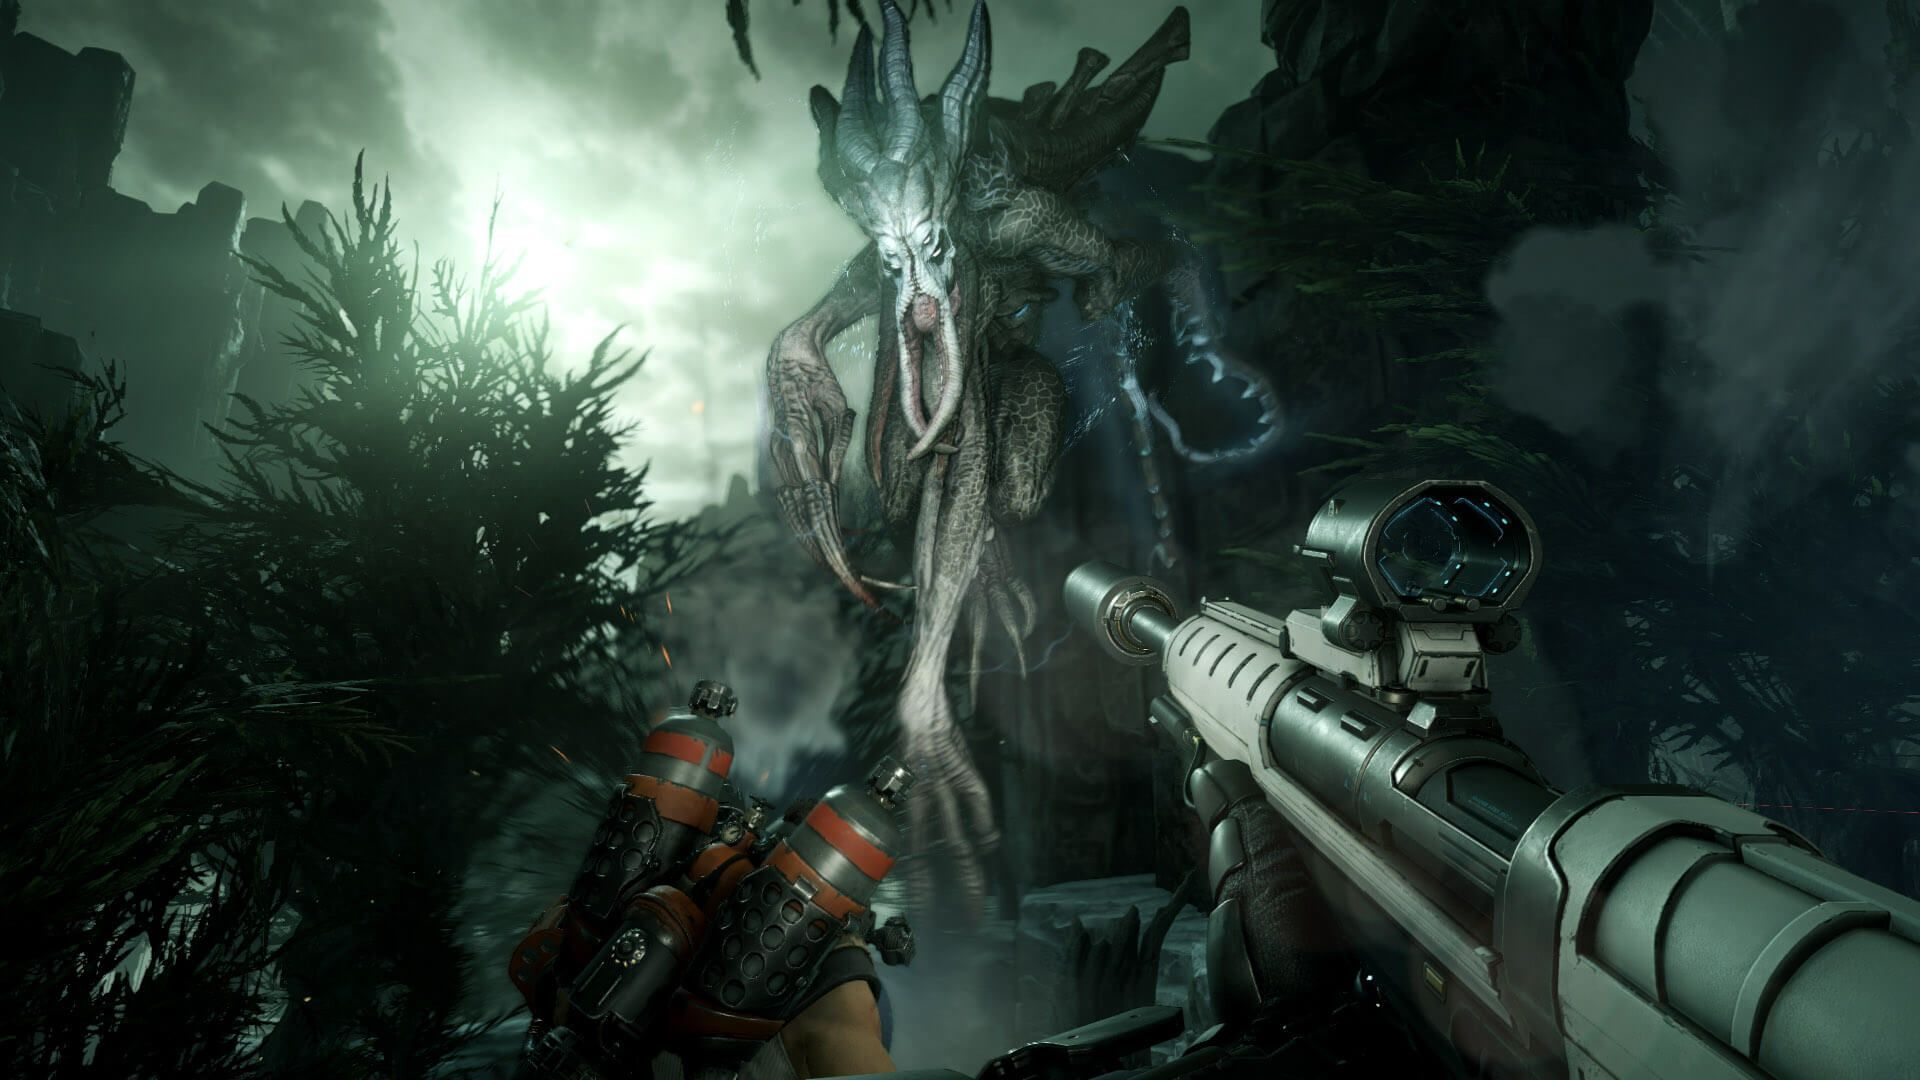 Photo of Let's hunt monsters for free: Evolve has become a free game and has gained immense popularity